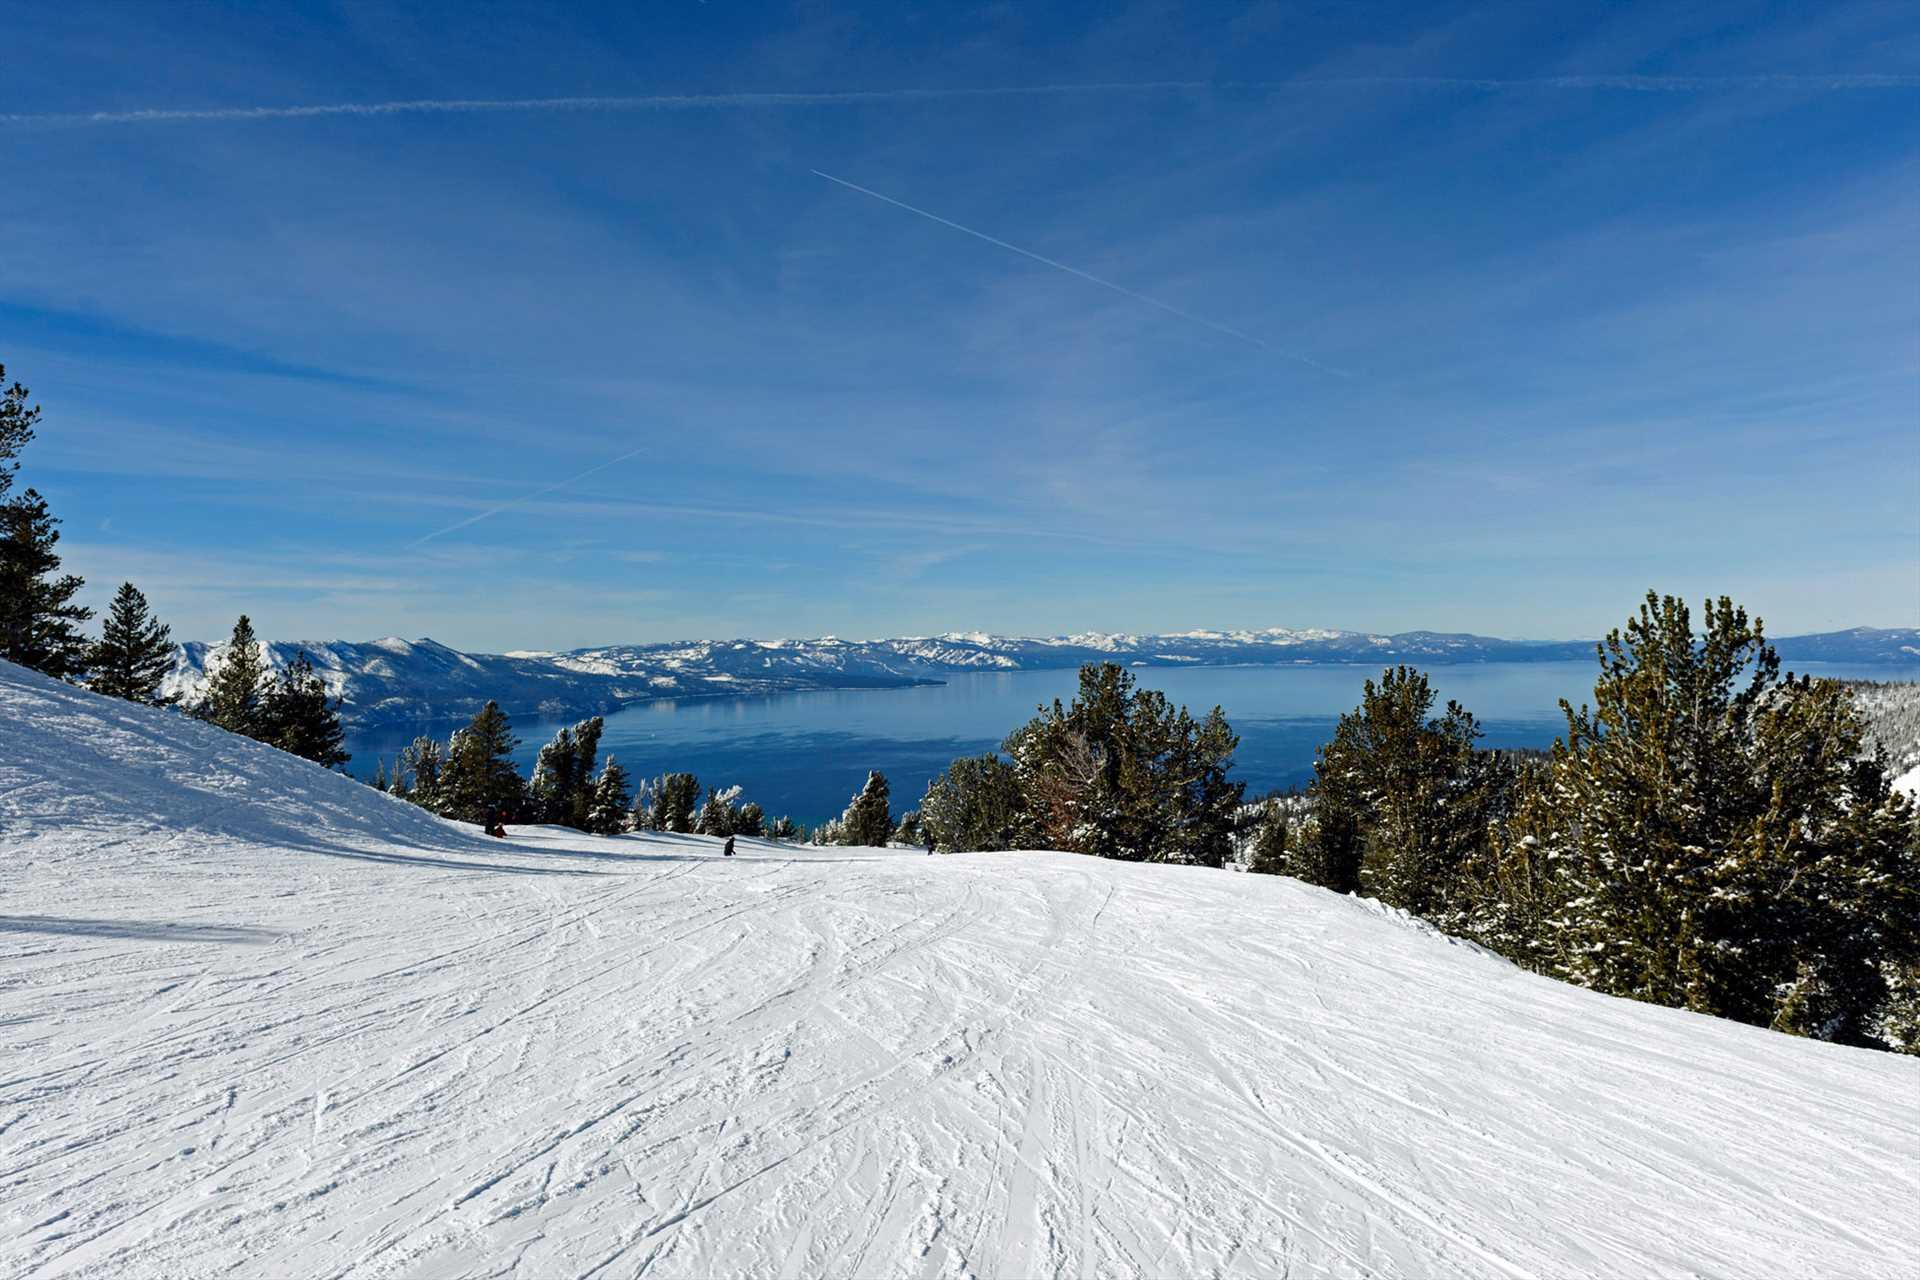 Winter Skiing at Lake Tahoe